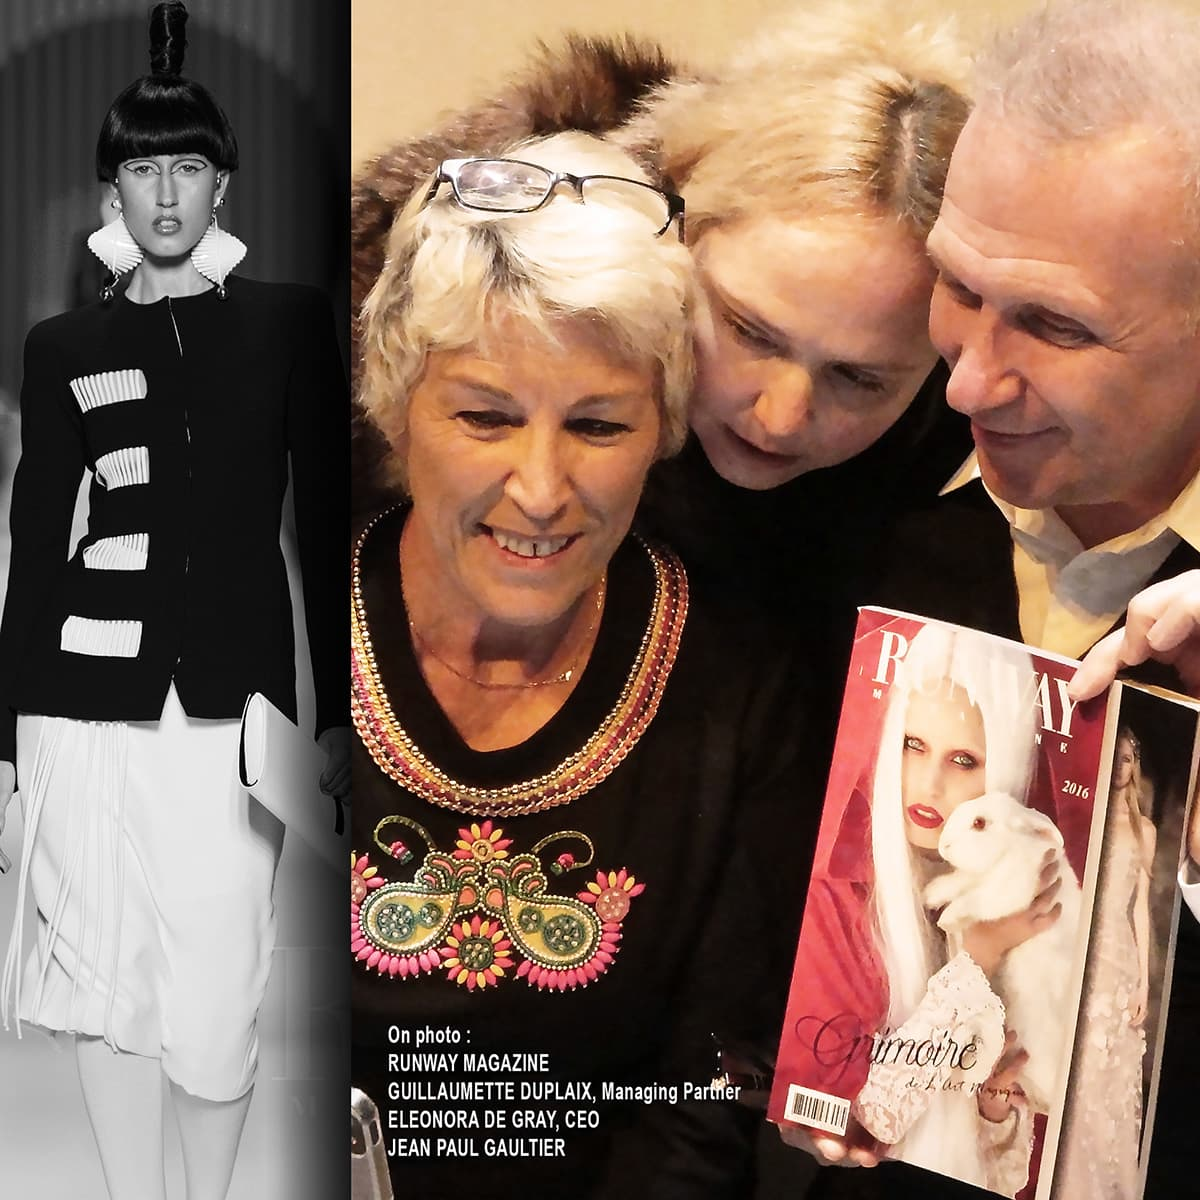 Jean Paul Gaultier and Editors of RUNWAY MAGAZINE